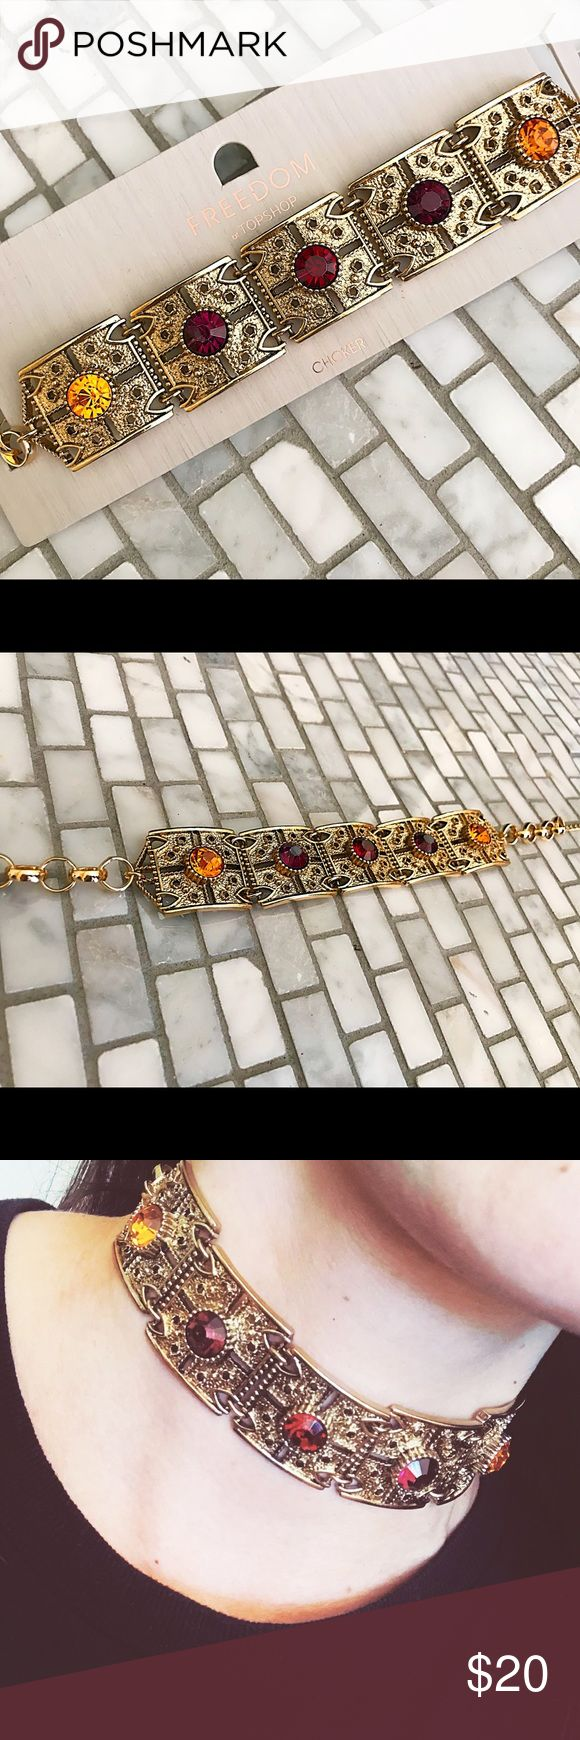 Metal Choker Top Shop gold metal choker, featuring square plated with encrusted beads. Length and width shown in pictures.             ❤️❤️❤️❤️❤️❤️❤️❤️❤️❤️❤️❤️❤️❤️❤️❤️❤️❤️❤️❤️boho choker, festival choker, boho jewelry, festival jewelry, fashion jewelry, Topshop Jewelry Necklaces